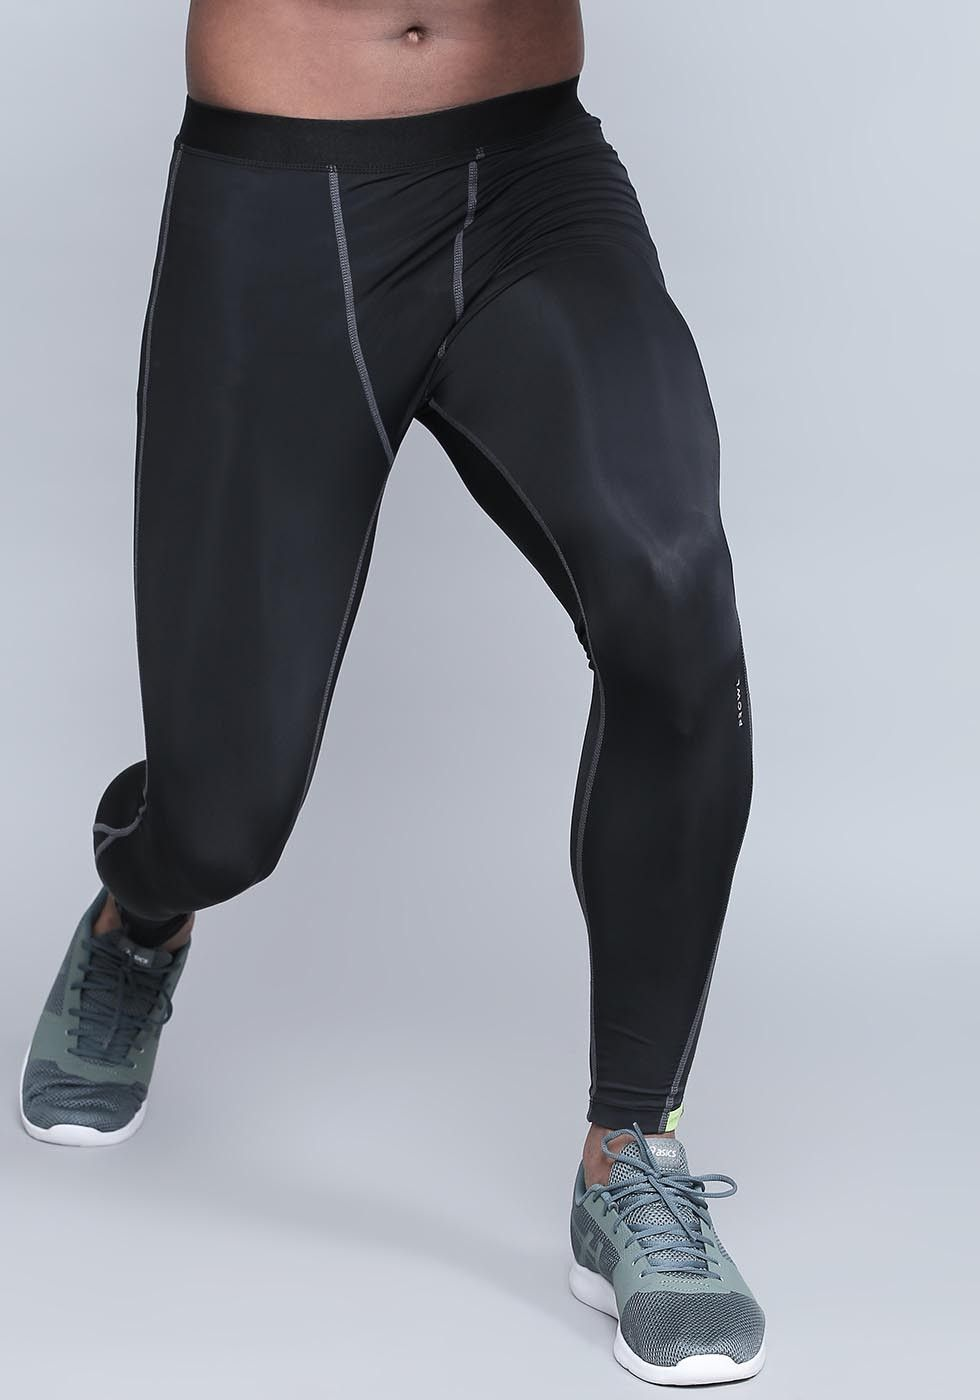 9a83704c59b12 PACER RUNNING & PERFORMANCE ACTIVEWEAR TIGHTS BY PROWL ₹1,999.00 ...